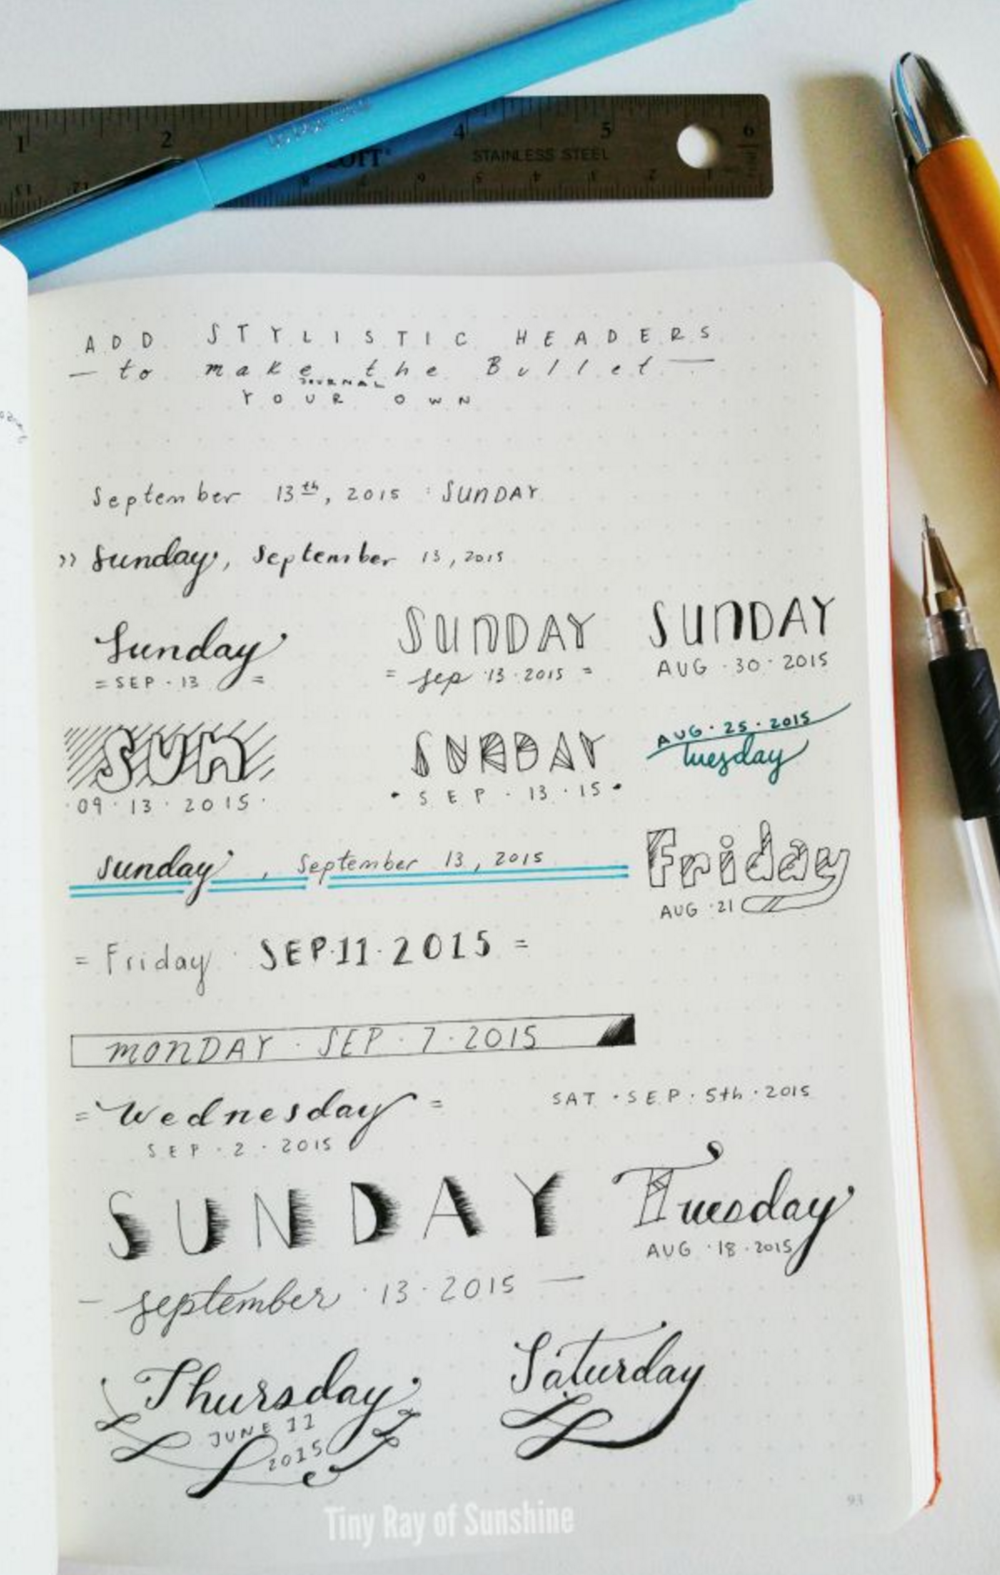 add sytlistic headers to your bullet journal